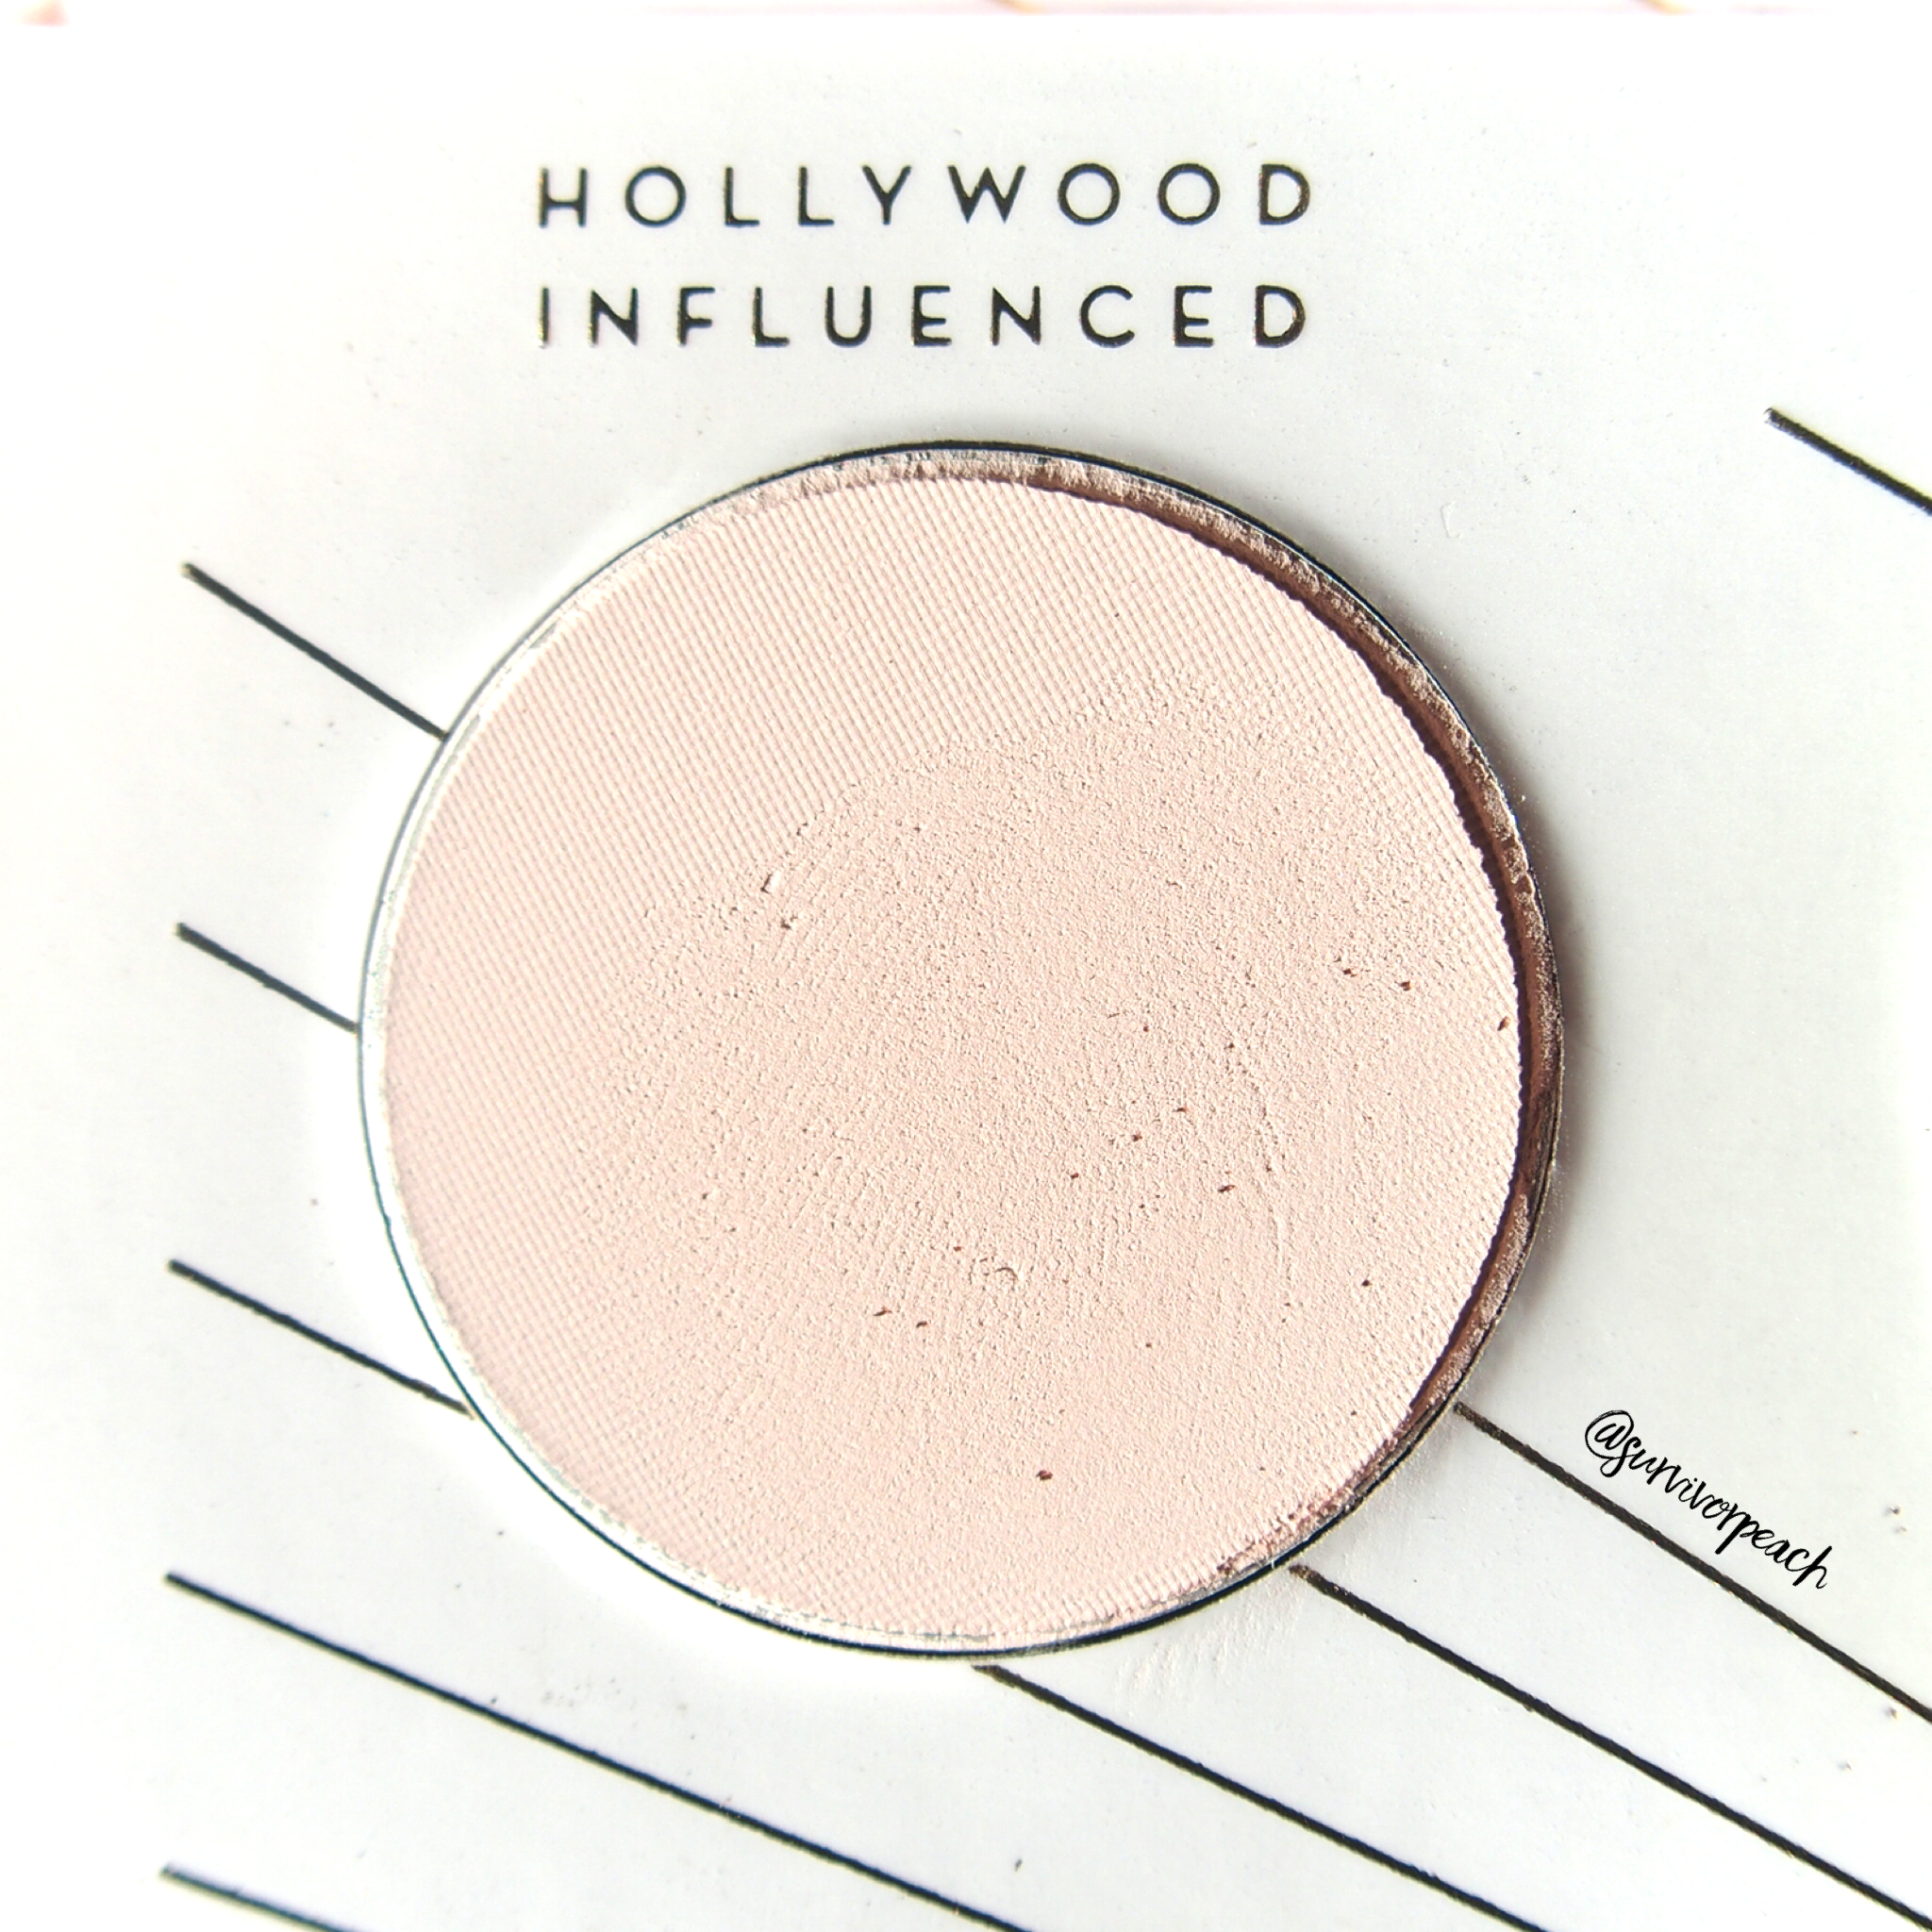 Zoeva Screen Queen Eyeshadow palette - Hollywood Influenced